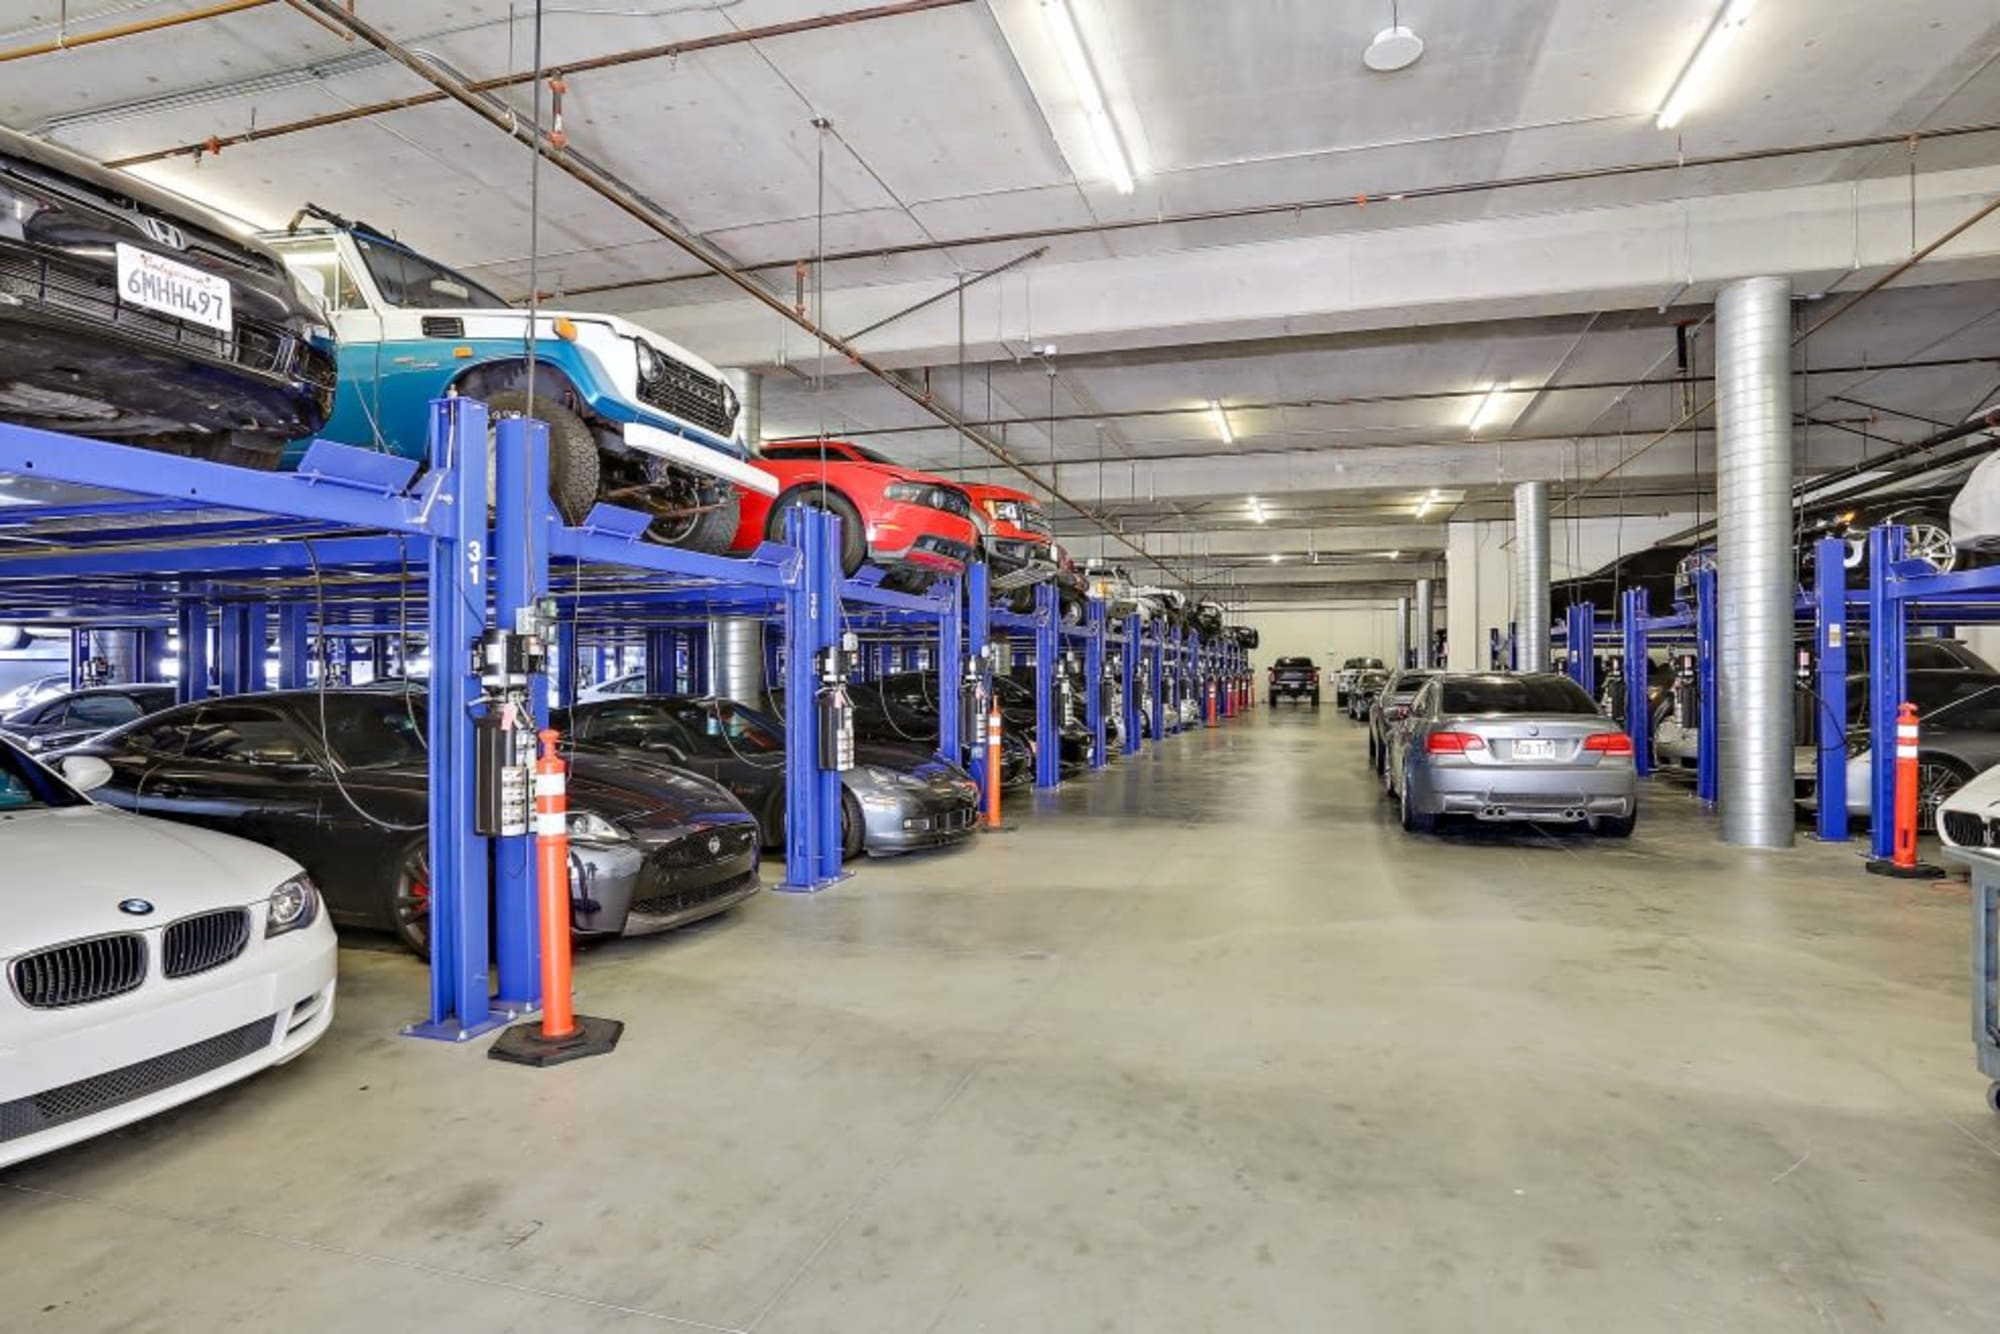 Car storage available at A-1 Self Storage in San Diego, California